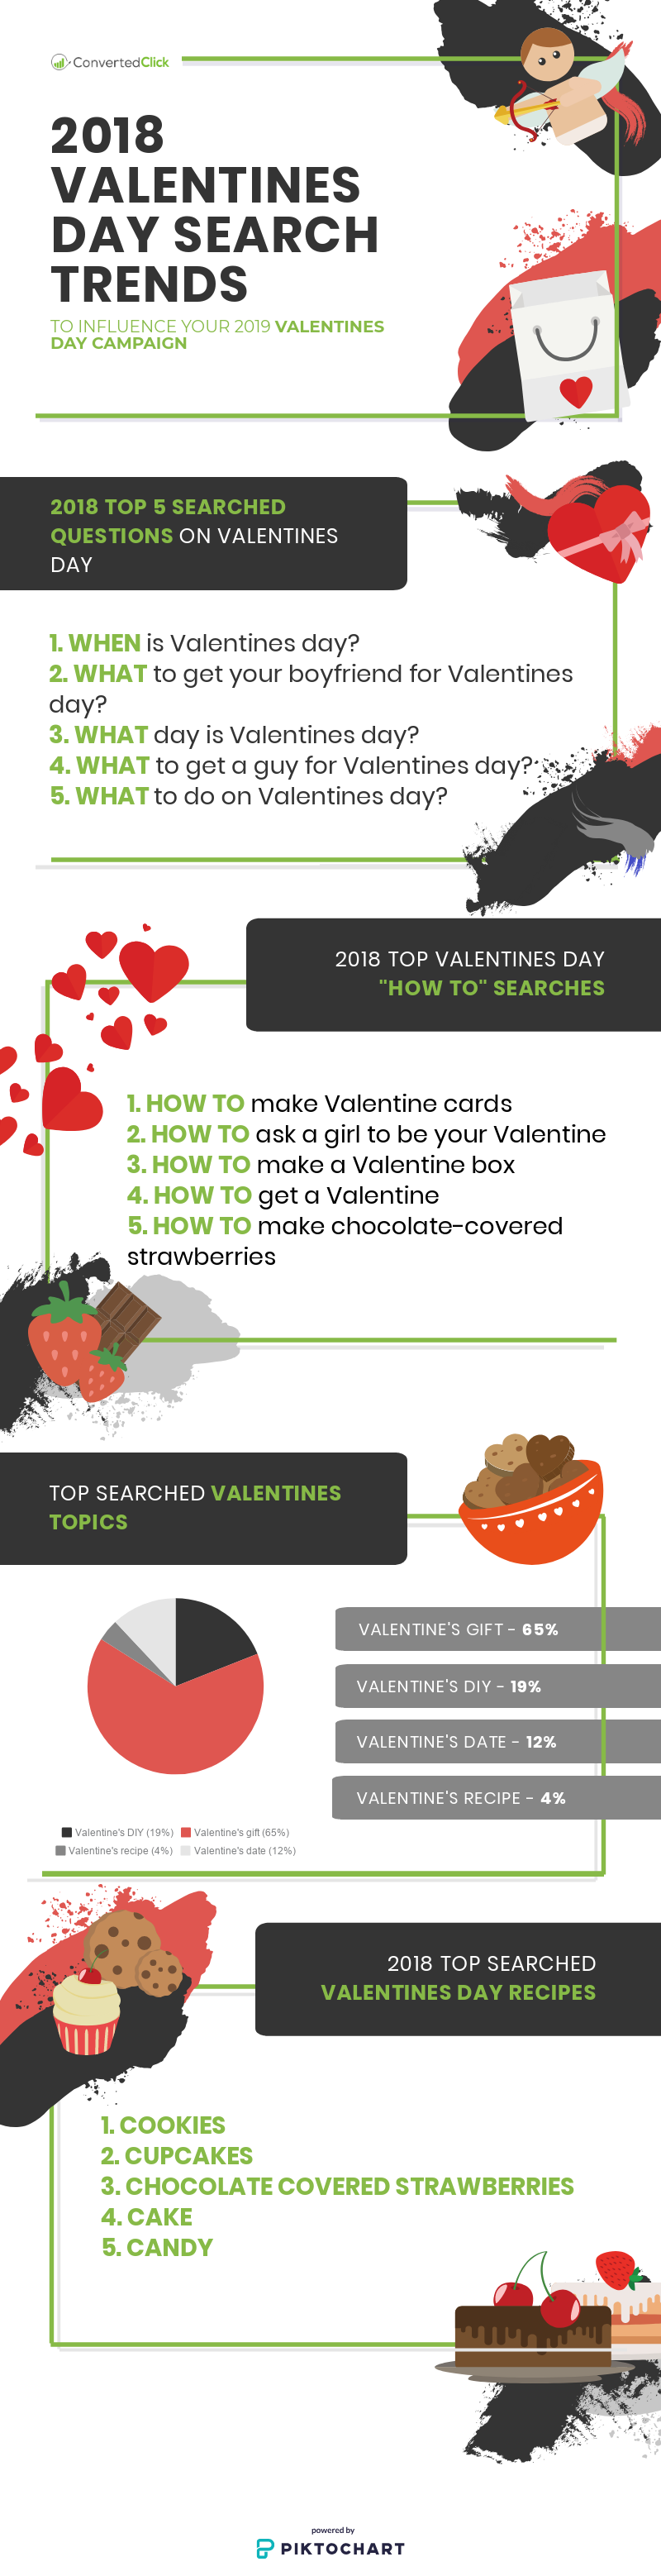 An infographic on the 2018 spending habits over valentines day